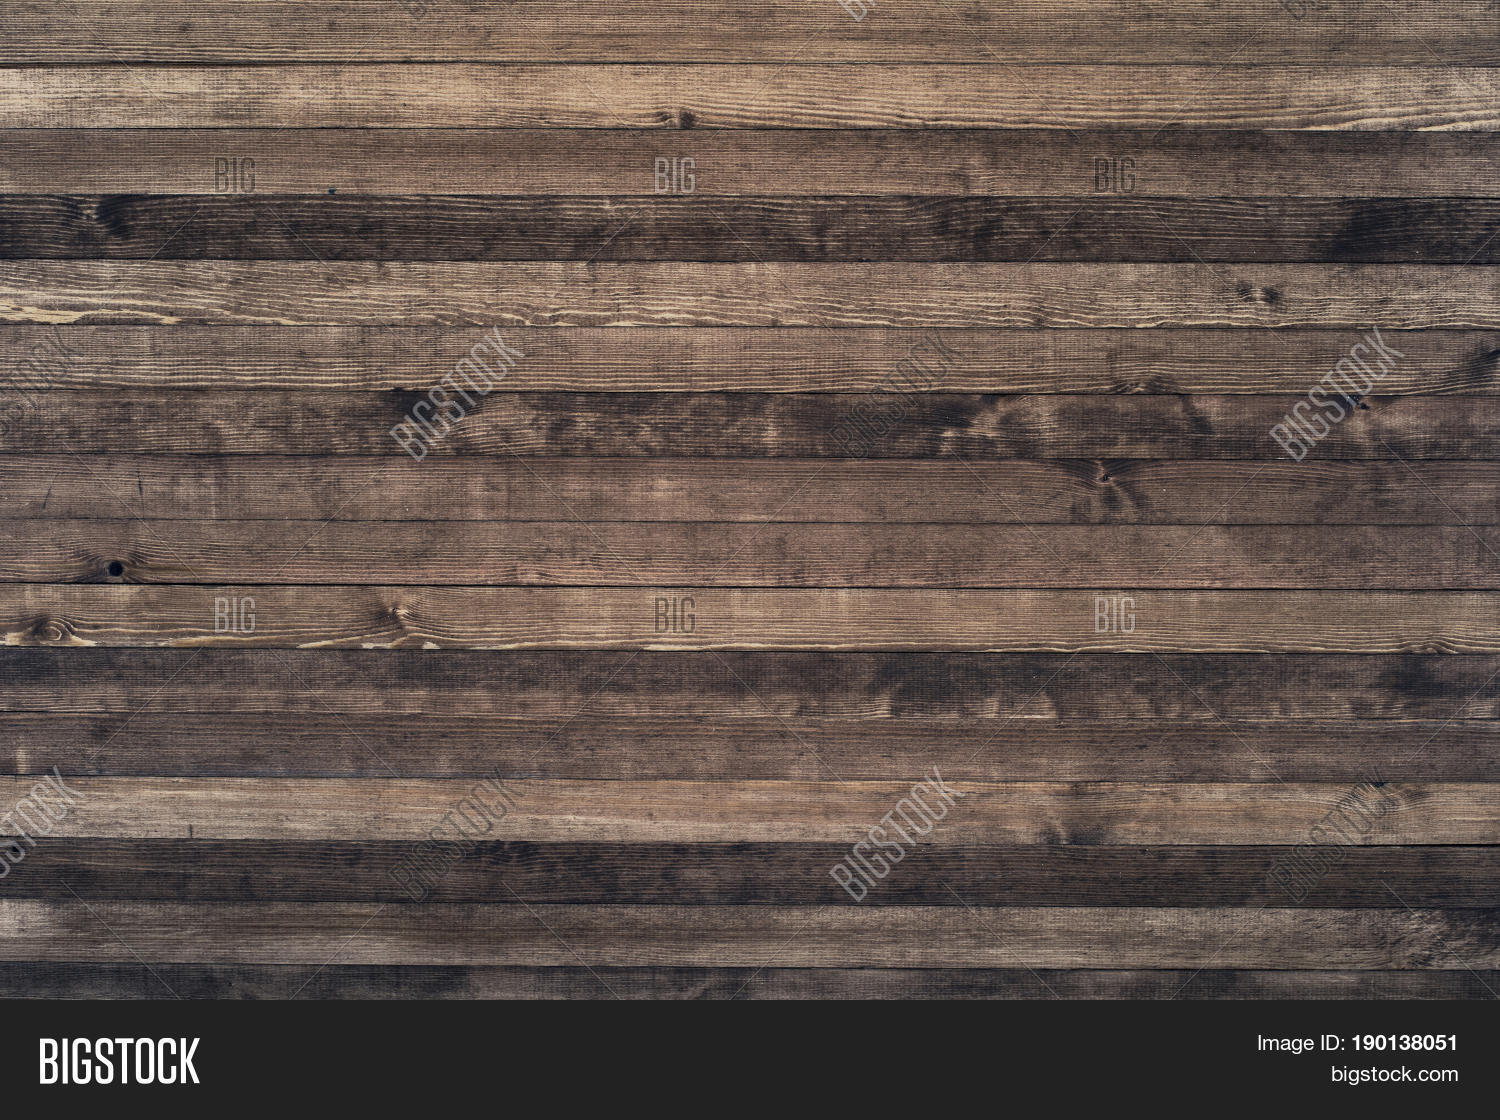 Wooden Table Surface ~ Empty wood table product placement image photo bigstock